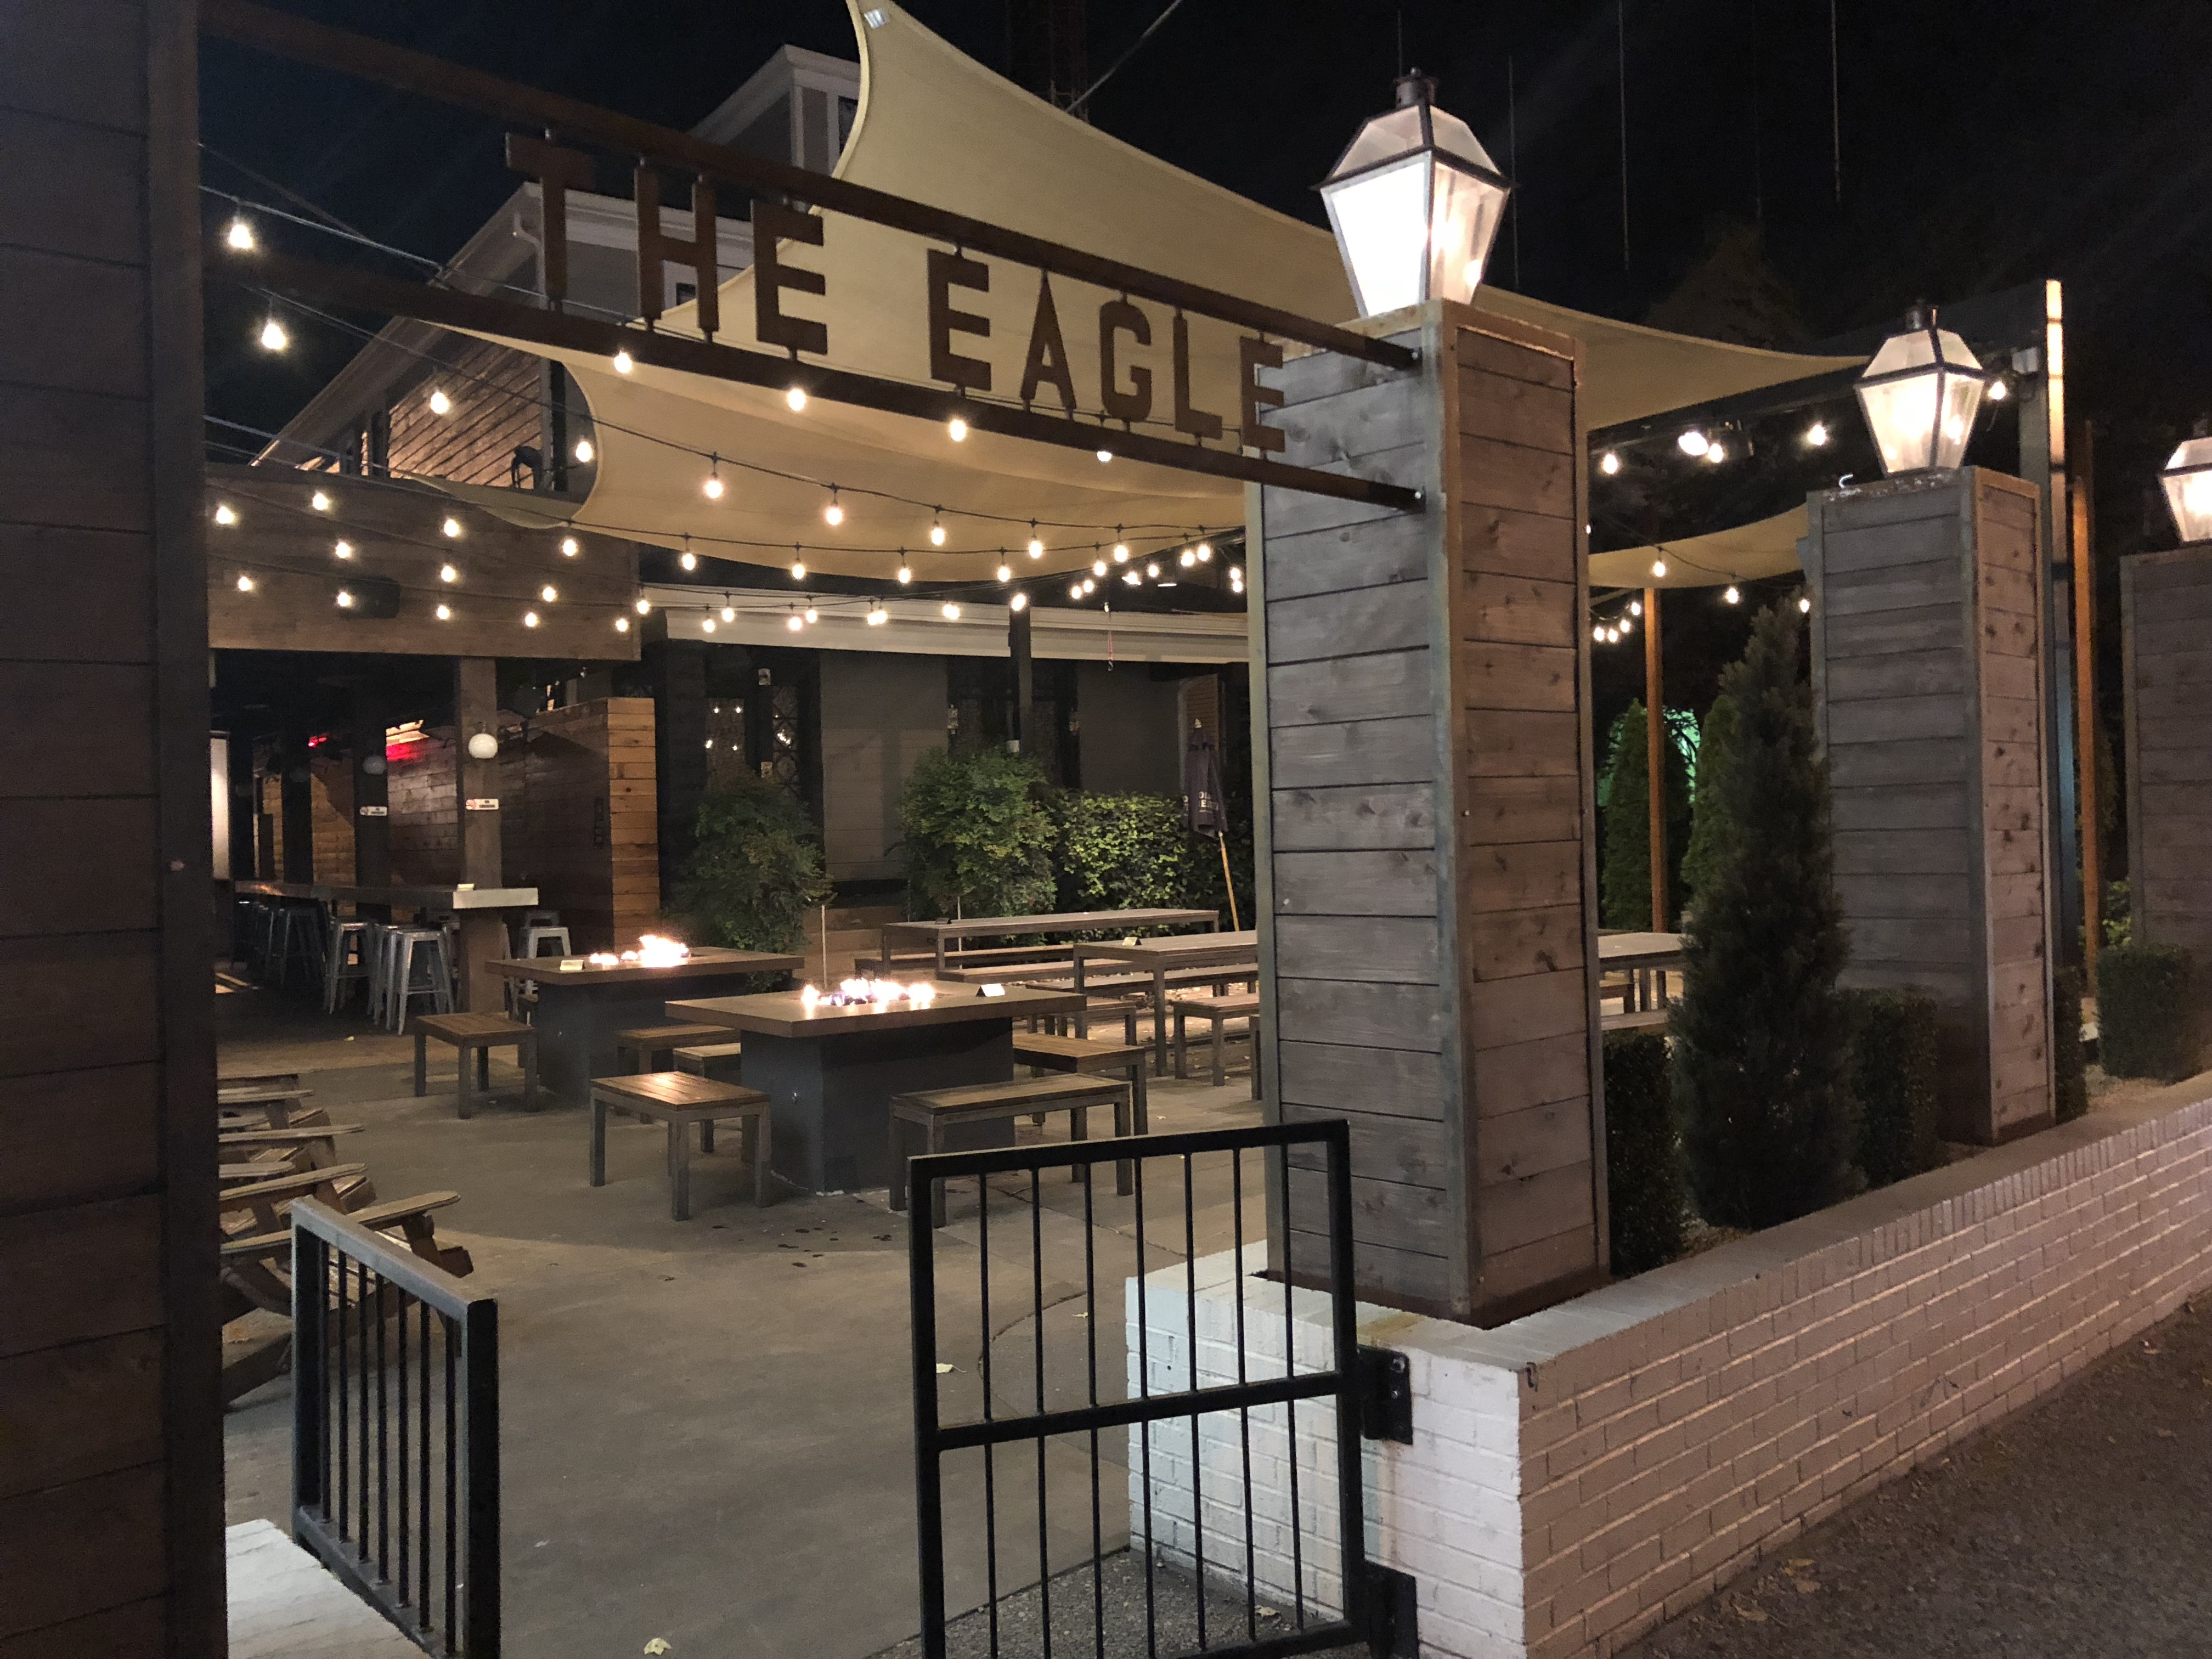 The Eagle @ Louisville, KY